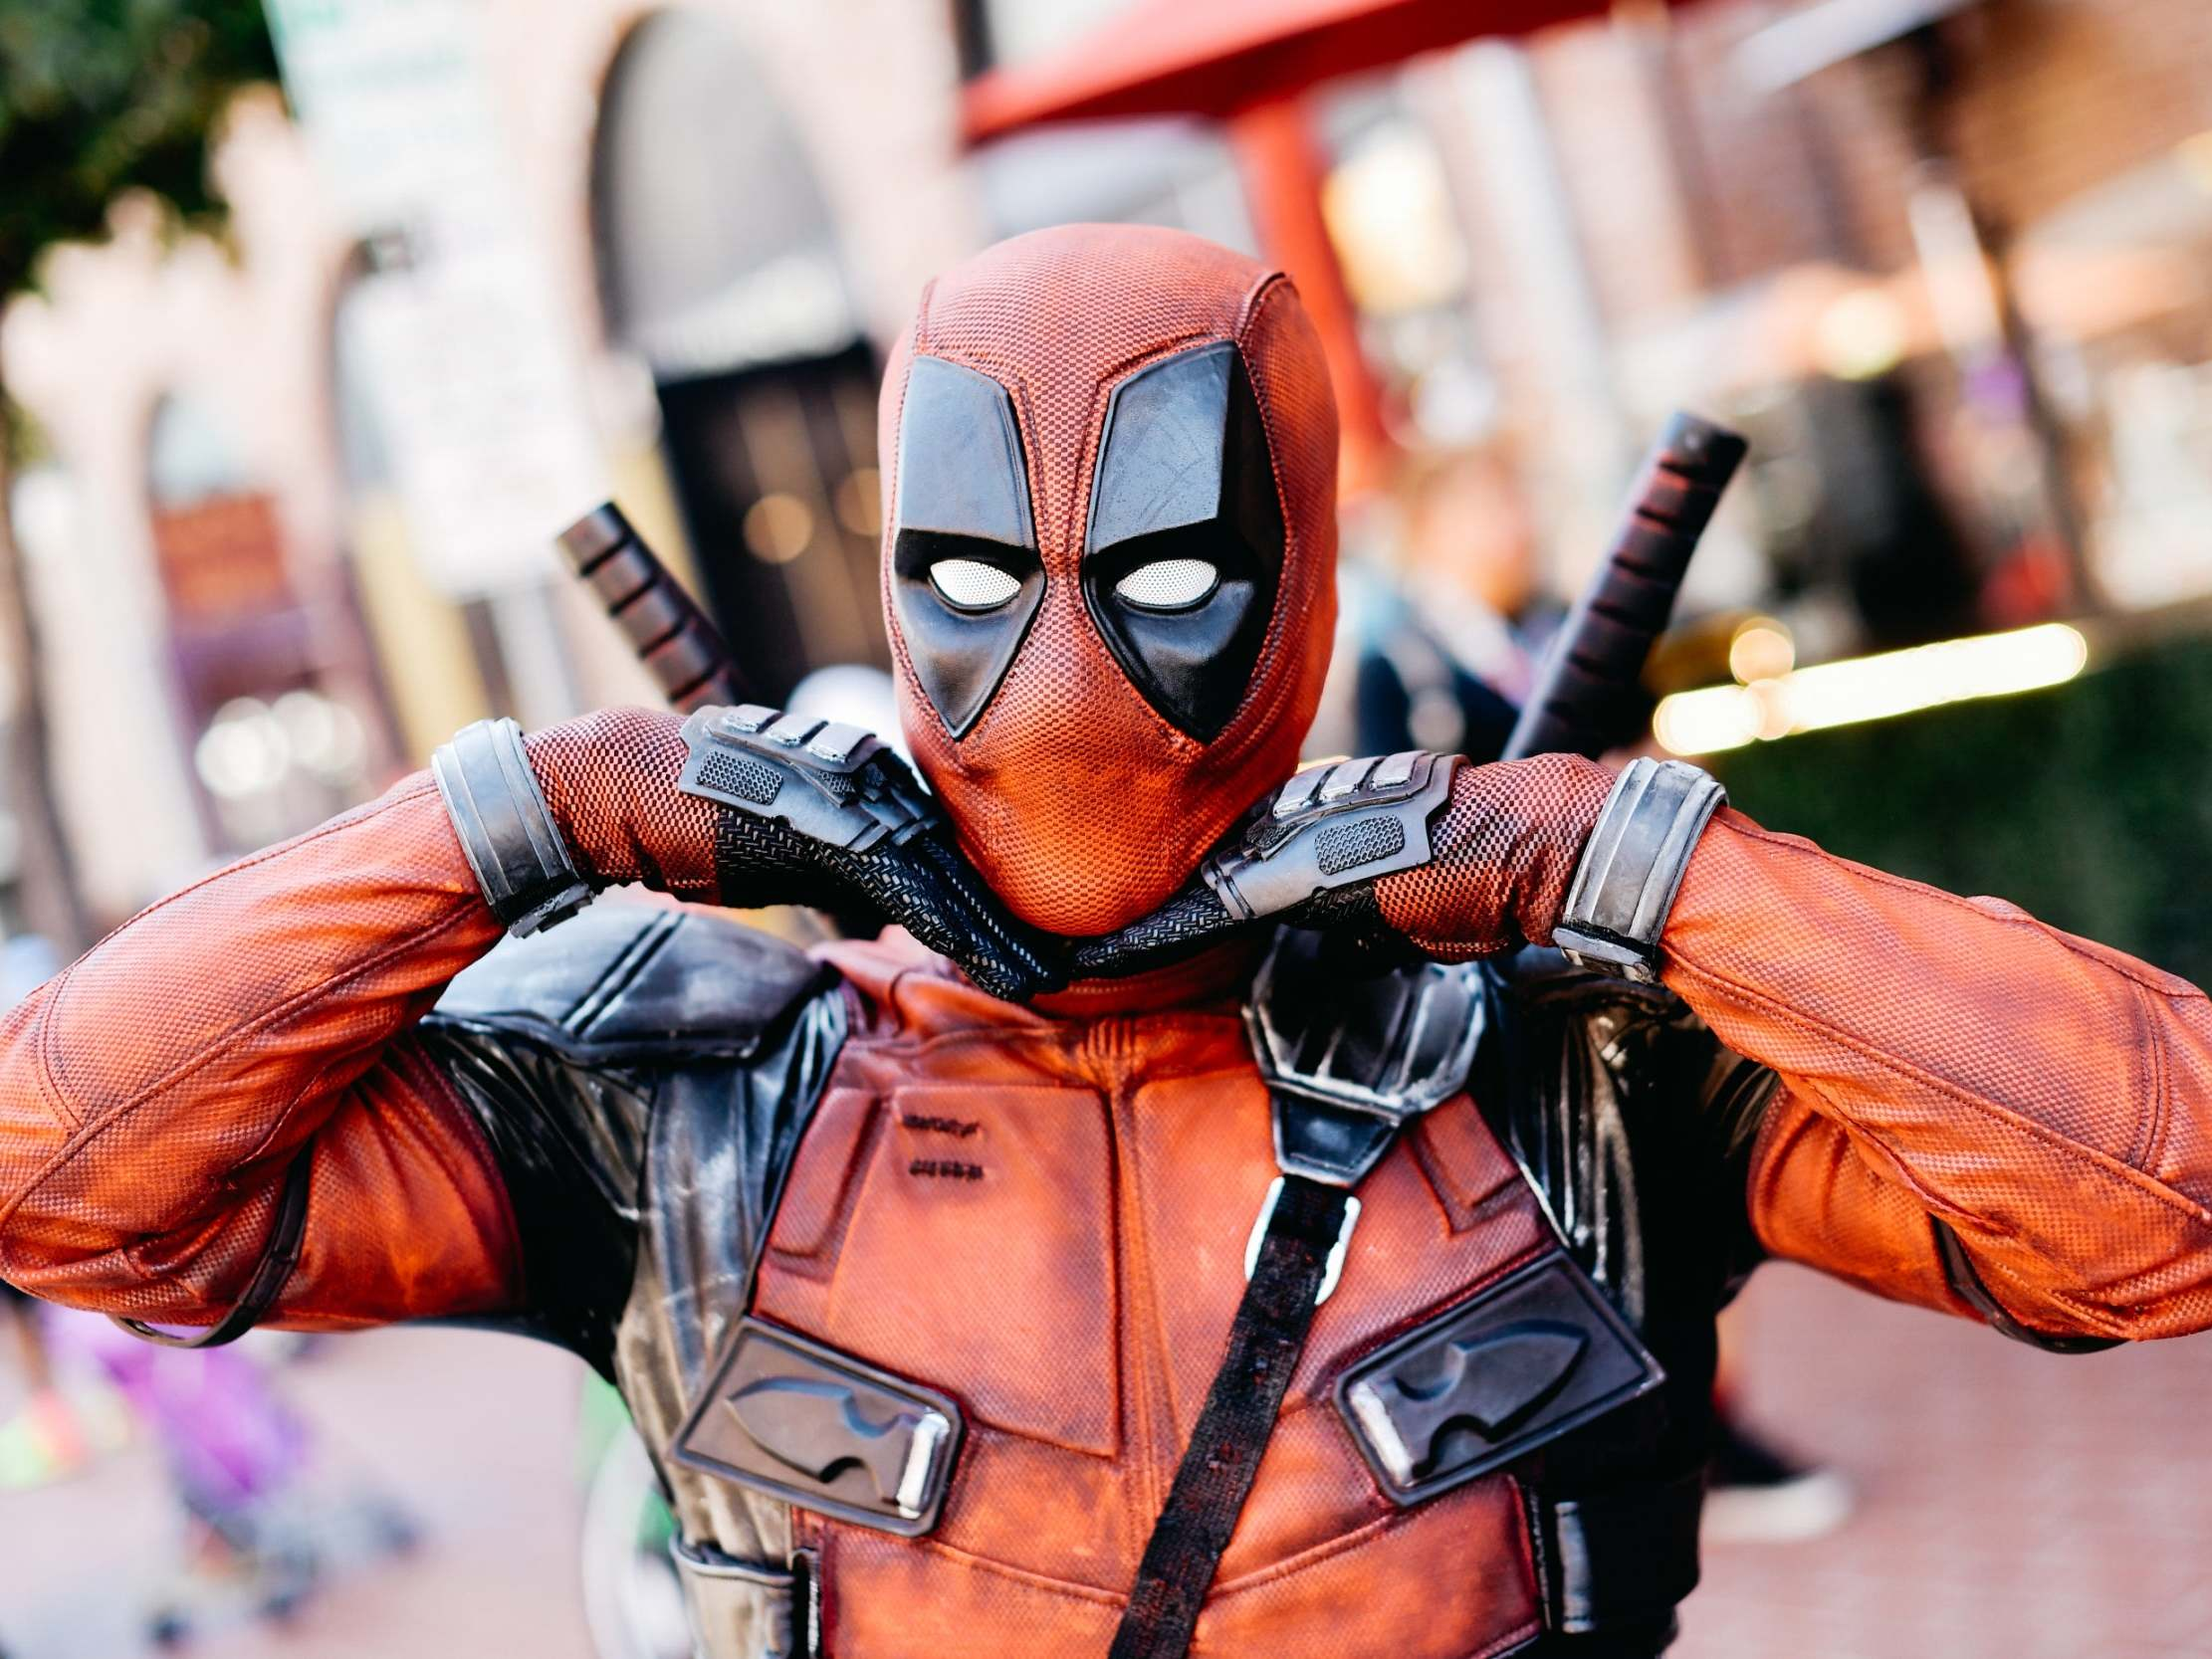 San Diego Comic-Con 2019: Best costumes, from Deadpool to